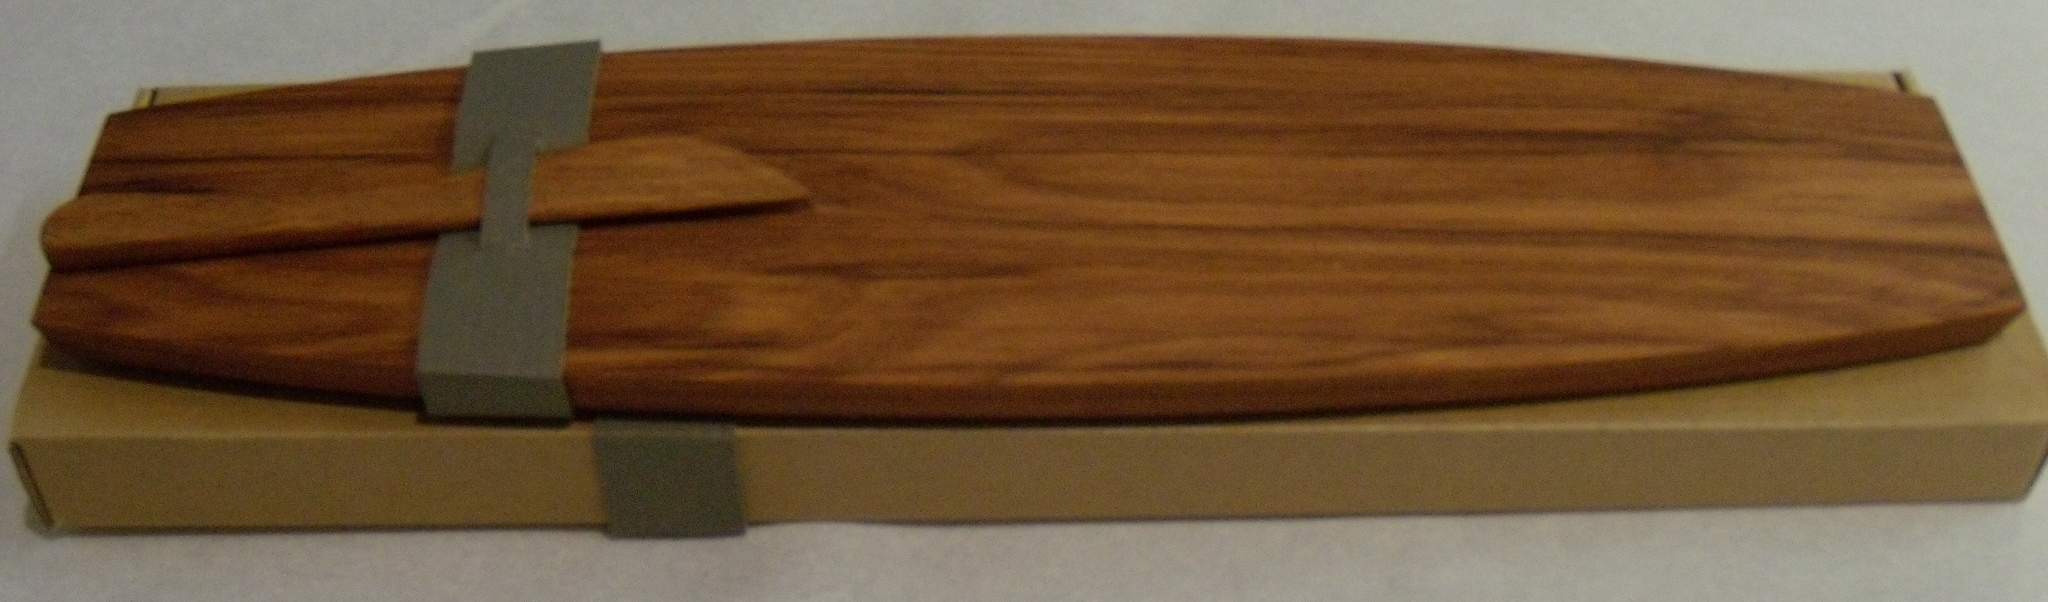 Waka Pate / Cheese Board and Knife Measures 440 mm l x 110 mm w